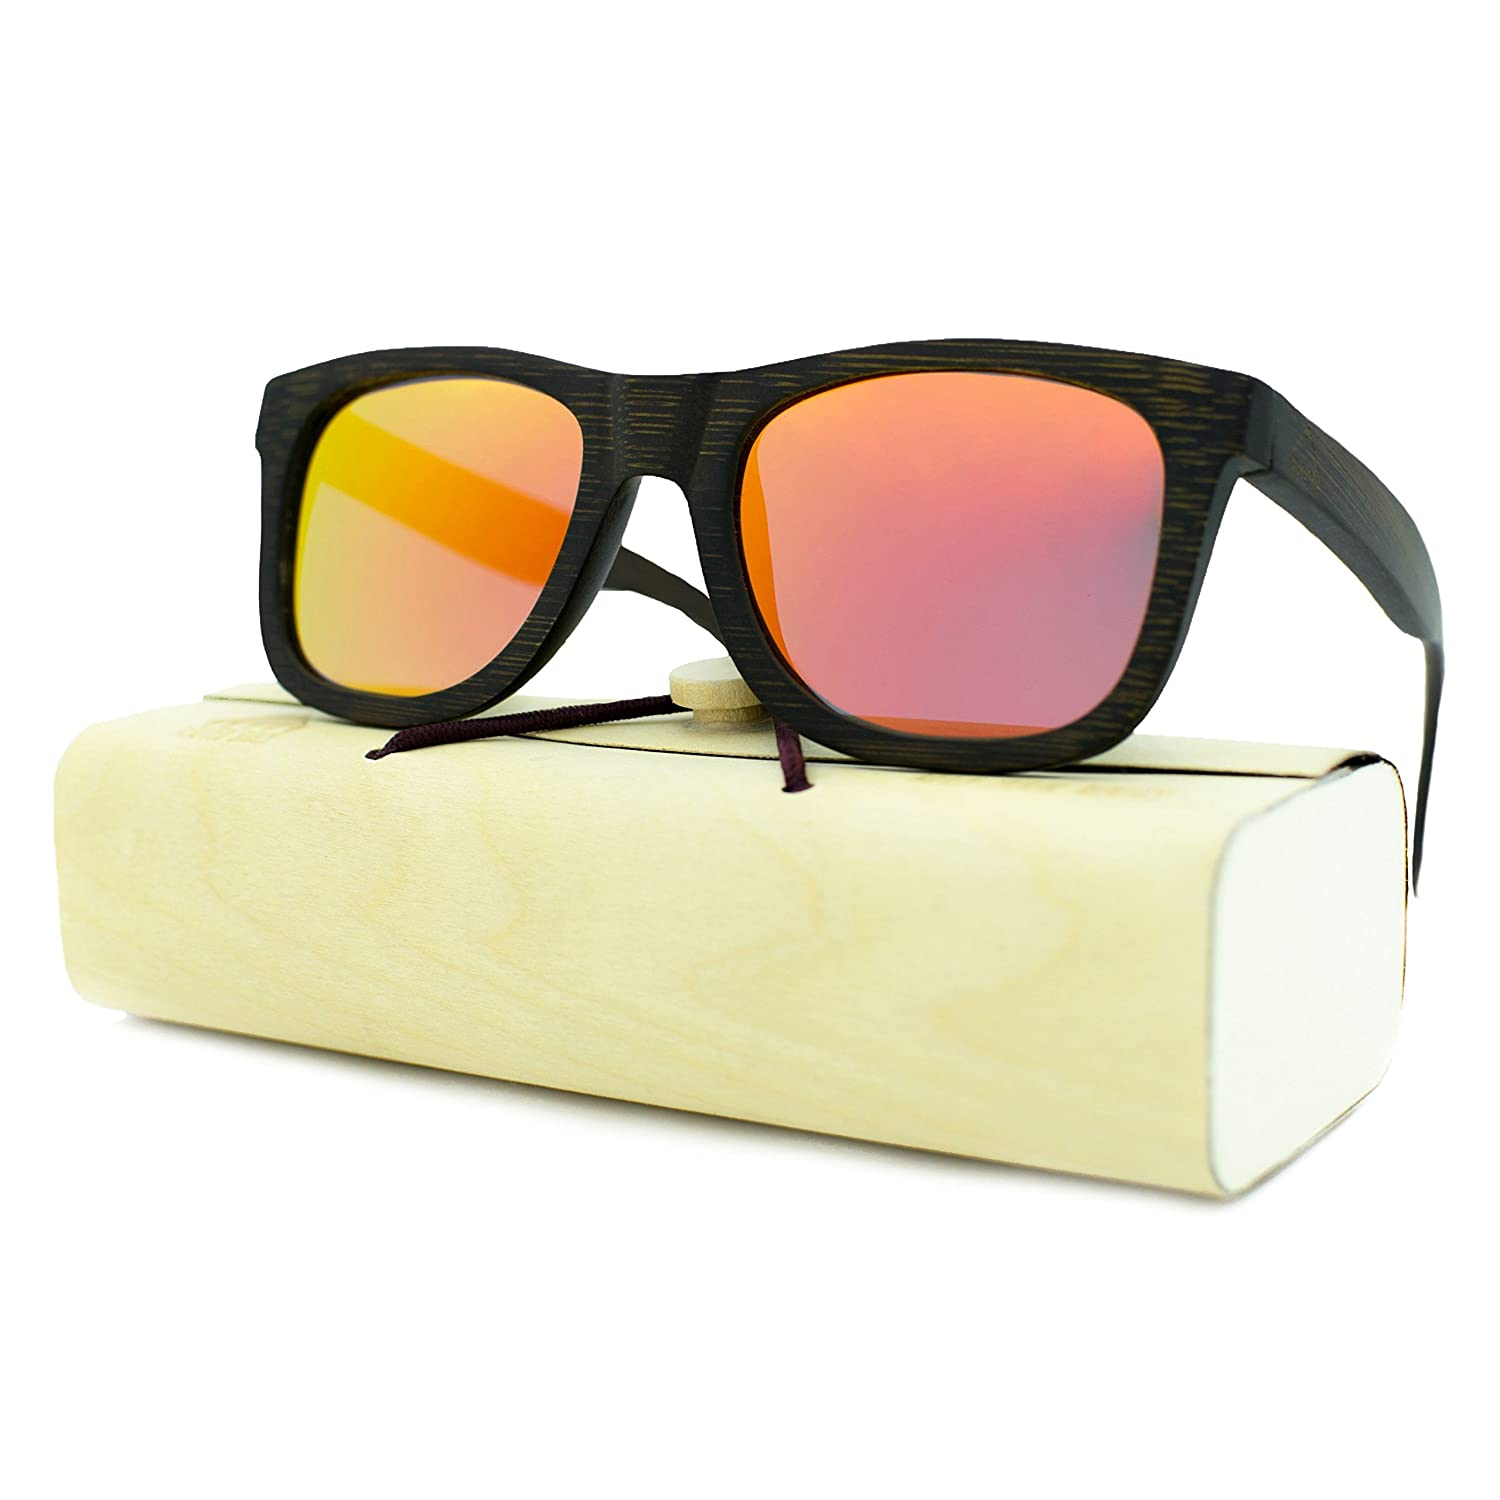 45a94bbe15 Amazon.com: Handcrafted Wooden Sunglasses for Men & Women, Polarized Lens,  Perfect Gift: Shoes